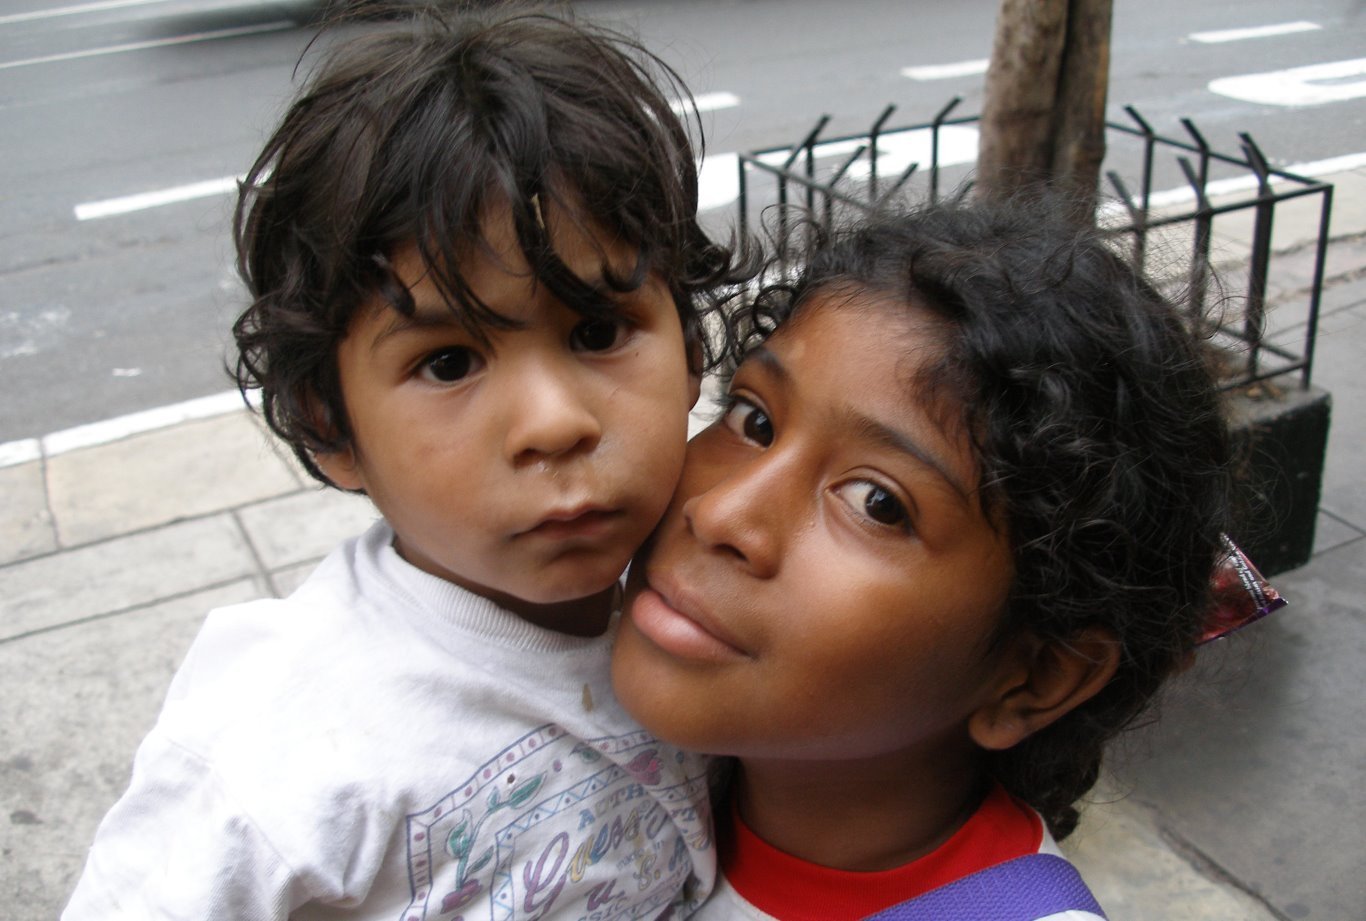 Children in Lima, Peru